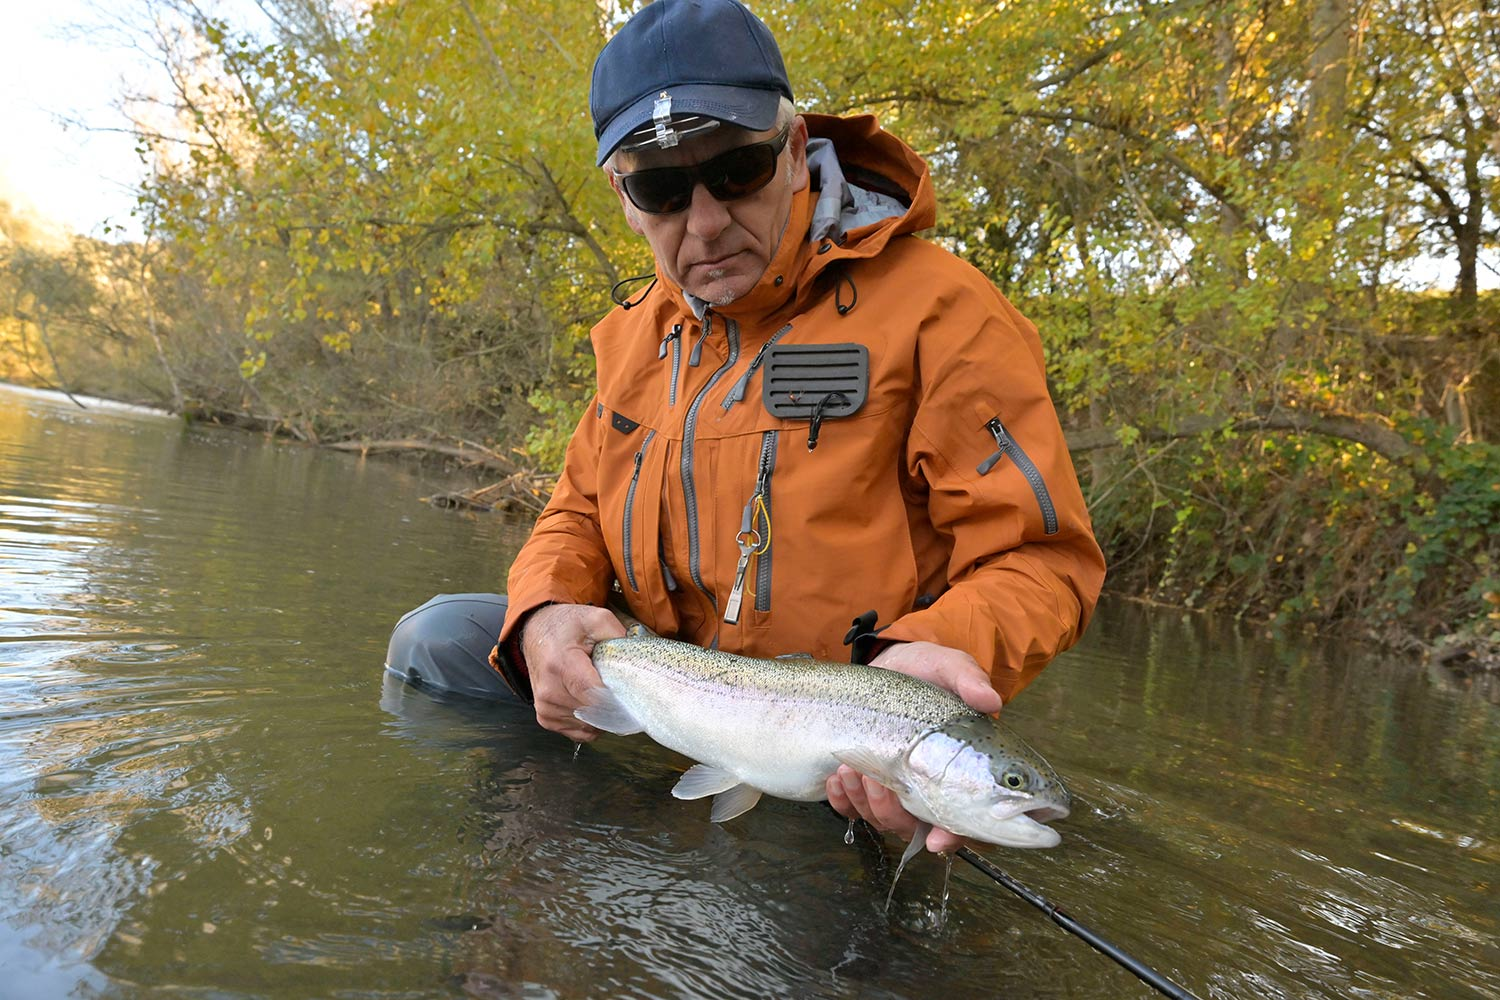 An angler with a large rainbow trout.